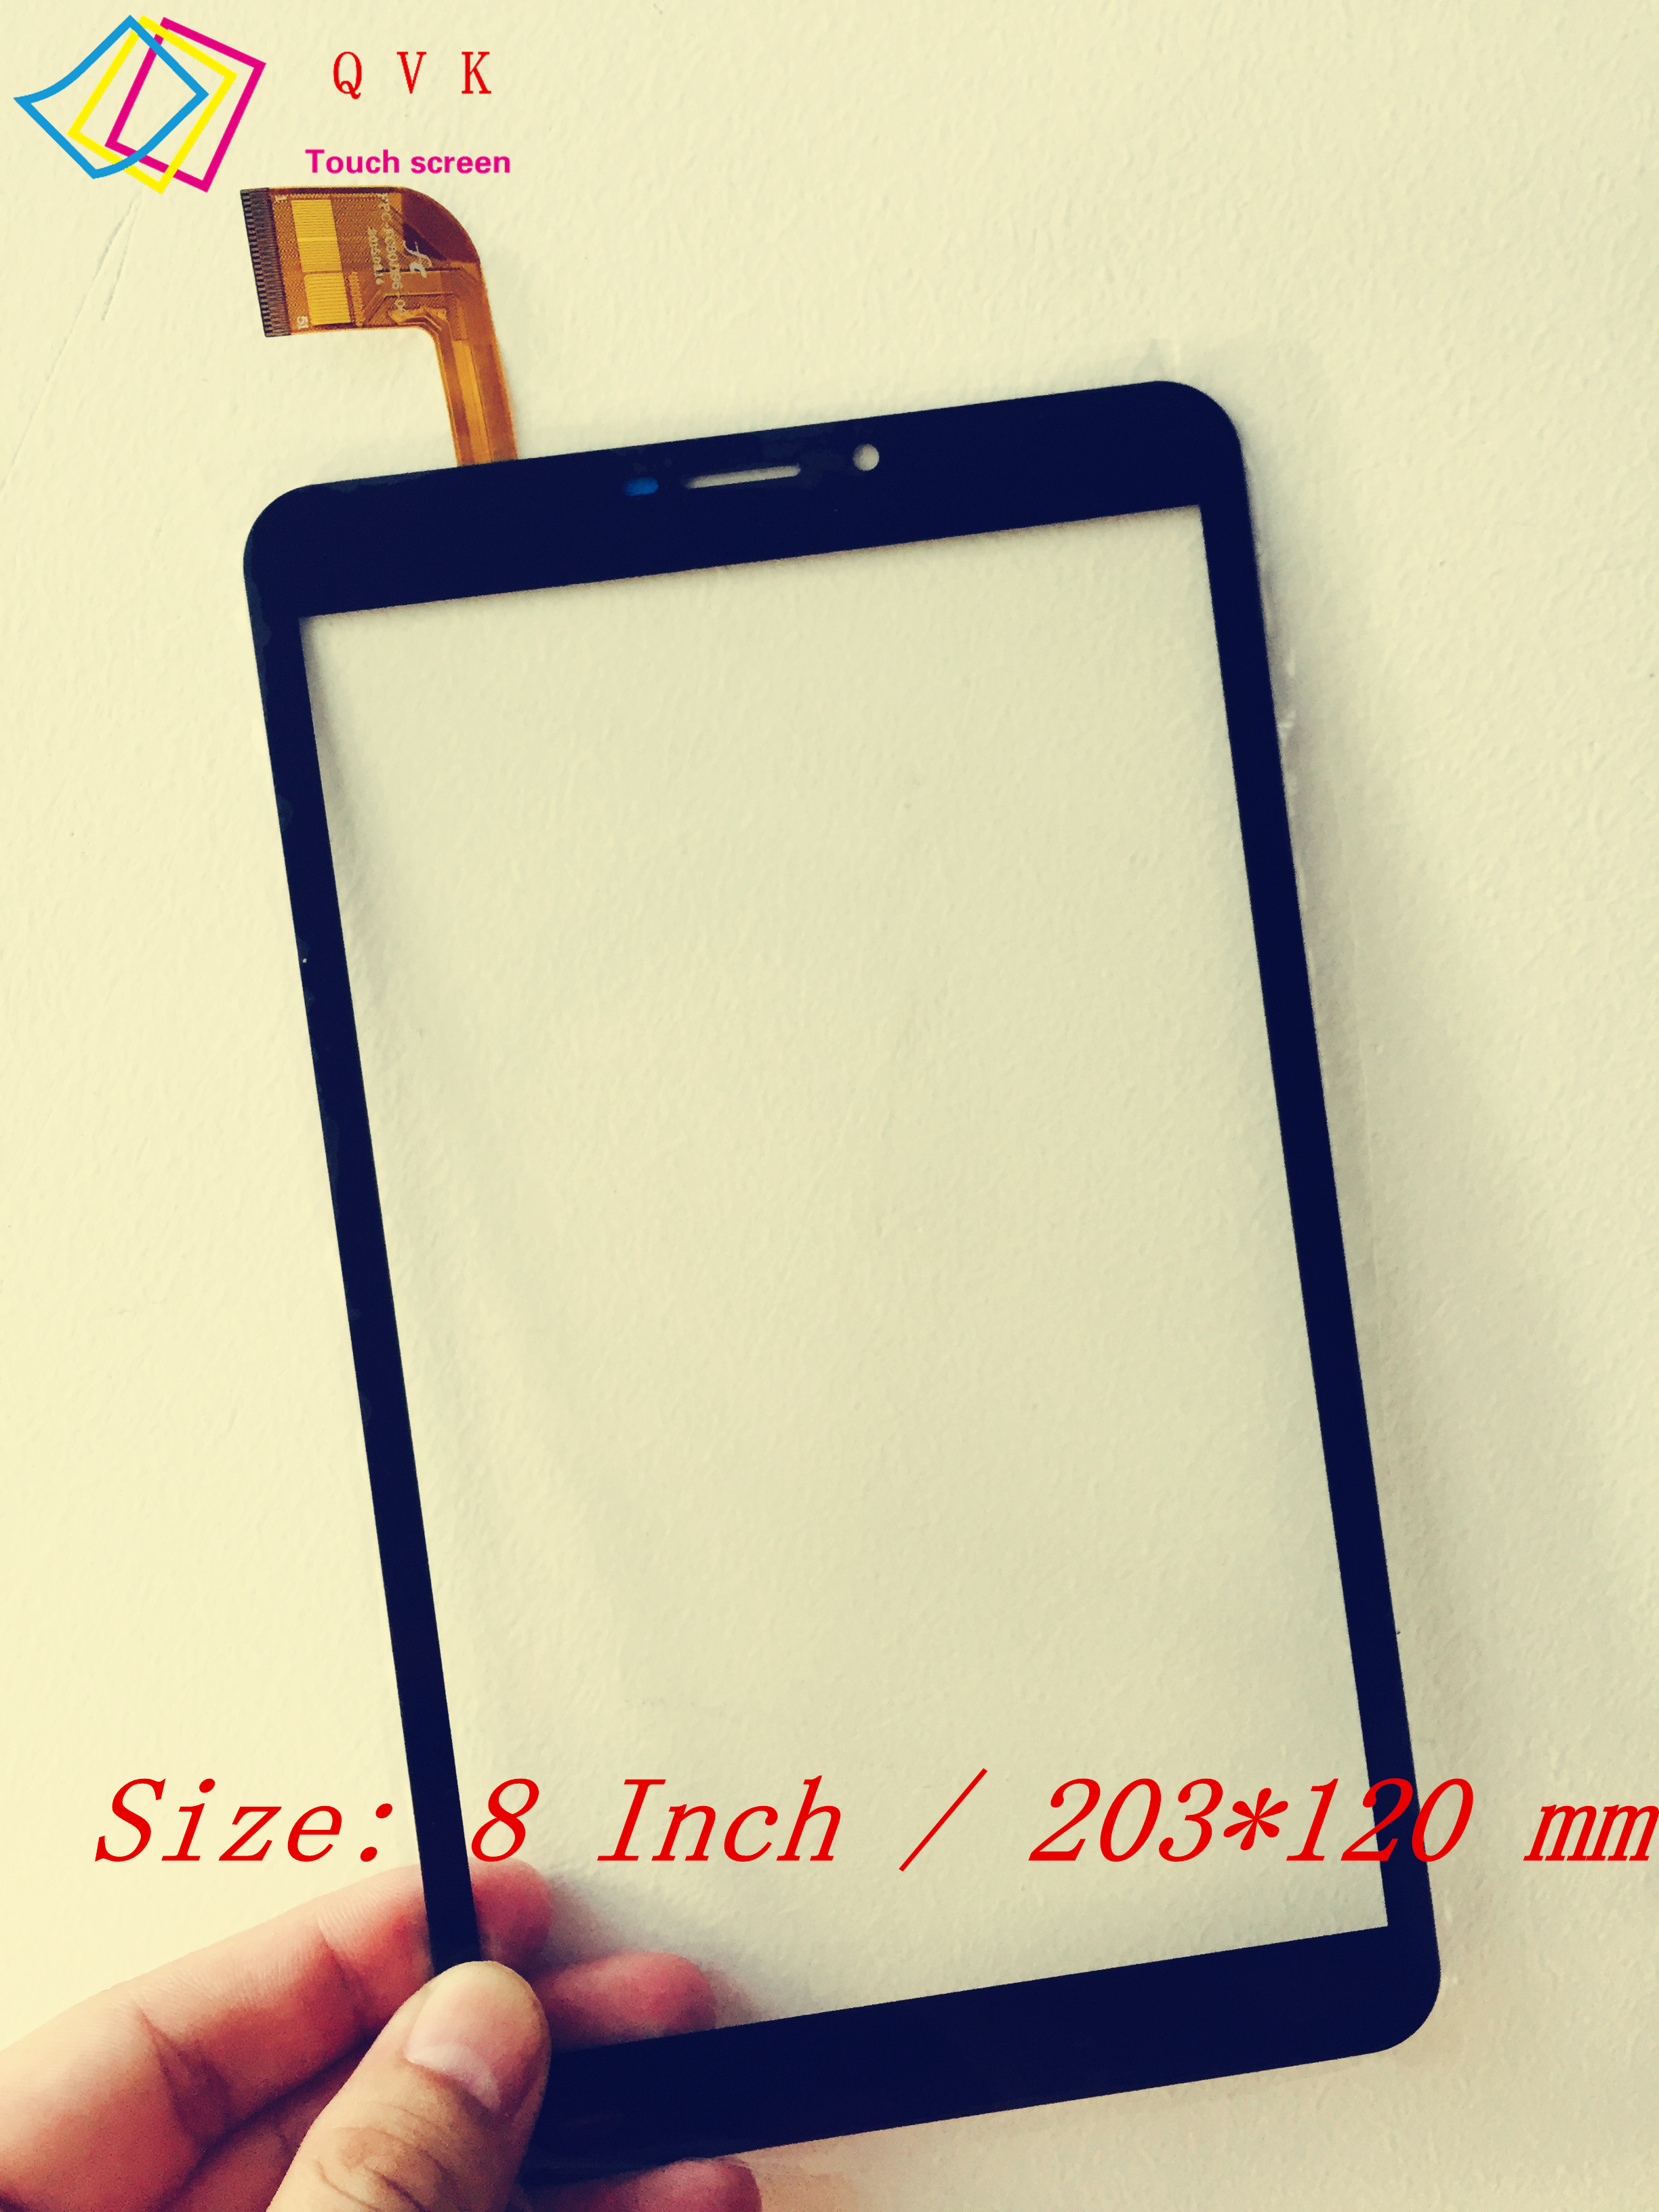 Black 8 Inch for Vonino Pluri Q8 tablet pc capacitive touch screen glass digitizer panel Free shipping for vonino pluri q8 touchscreen 8 inch black new touch screen panel digitizer sensor repair replacement parts free shipping